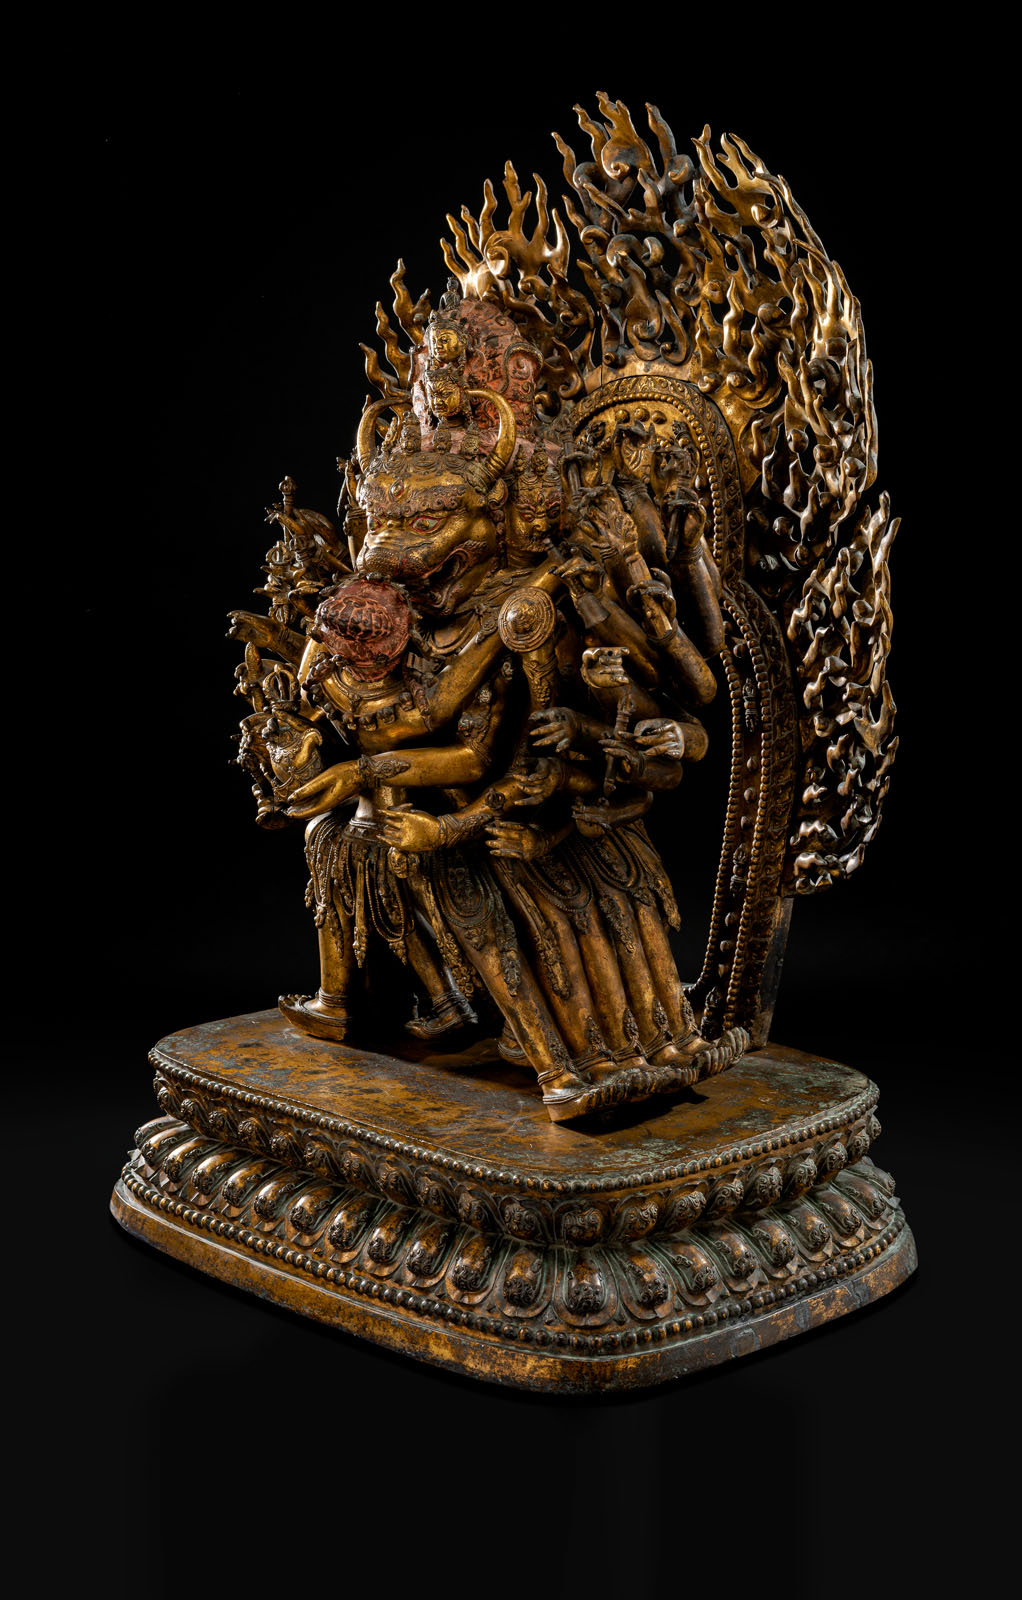 A HIGHLY IMPORTANT MONUMENTAL IMPERIAL GILT-BRONZE FIGURE OF VAJRABHAIRAVA - Image 6 of 8